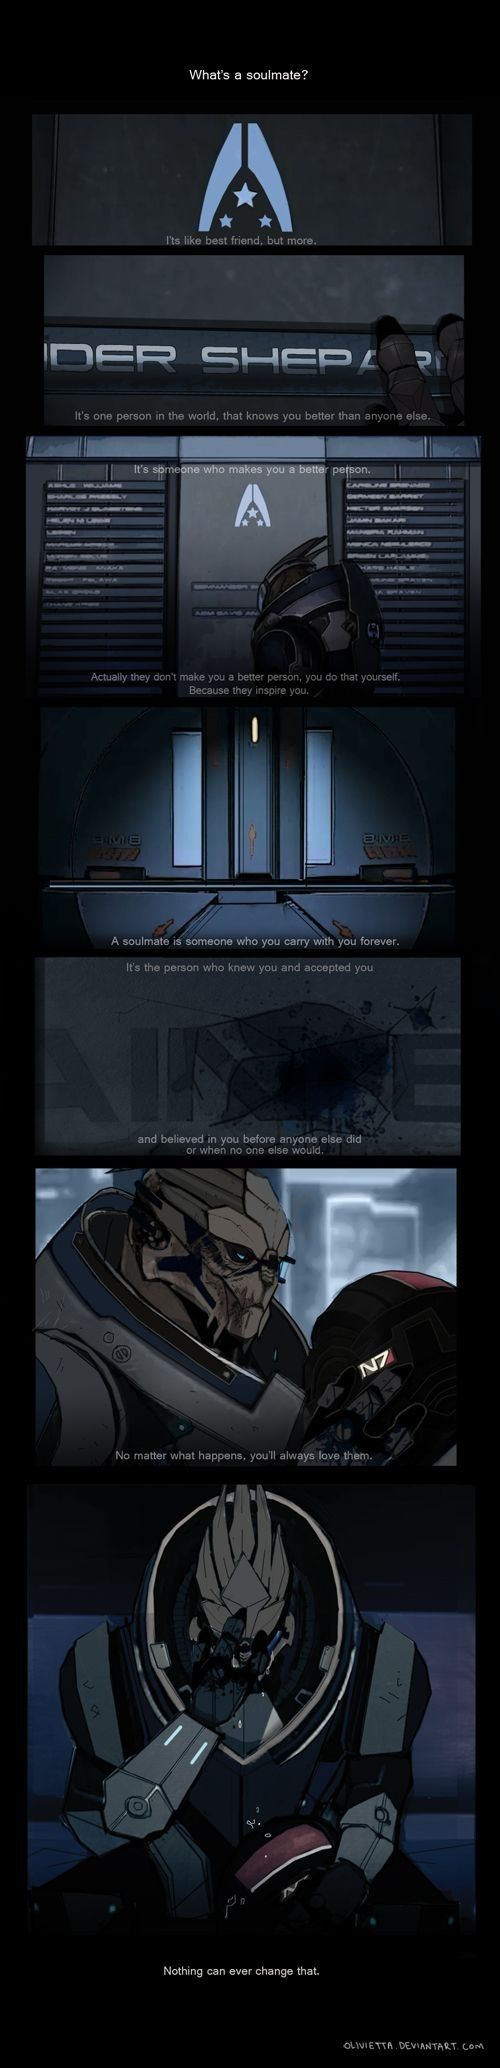 Mass effect <3 - this is why I love you Garrus.